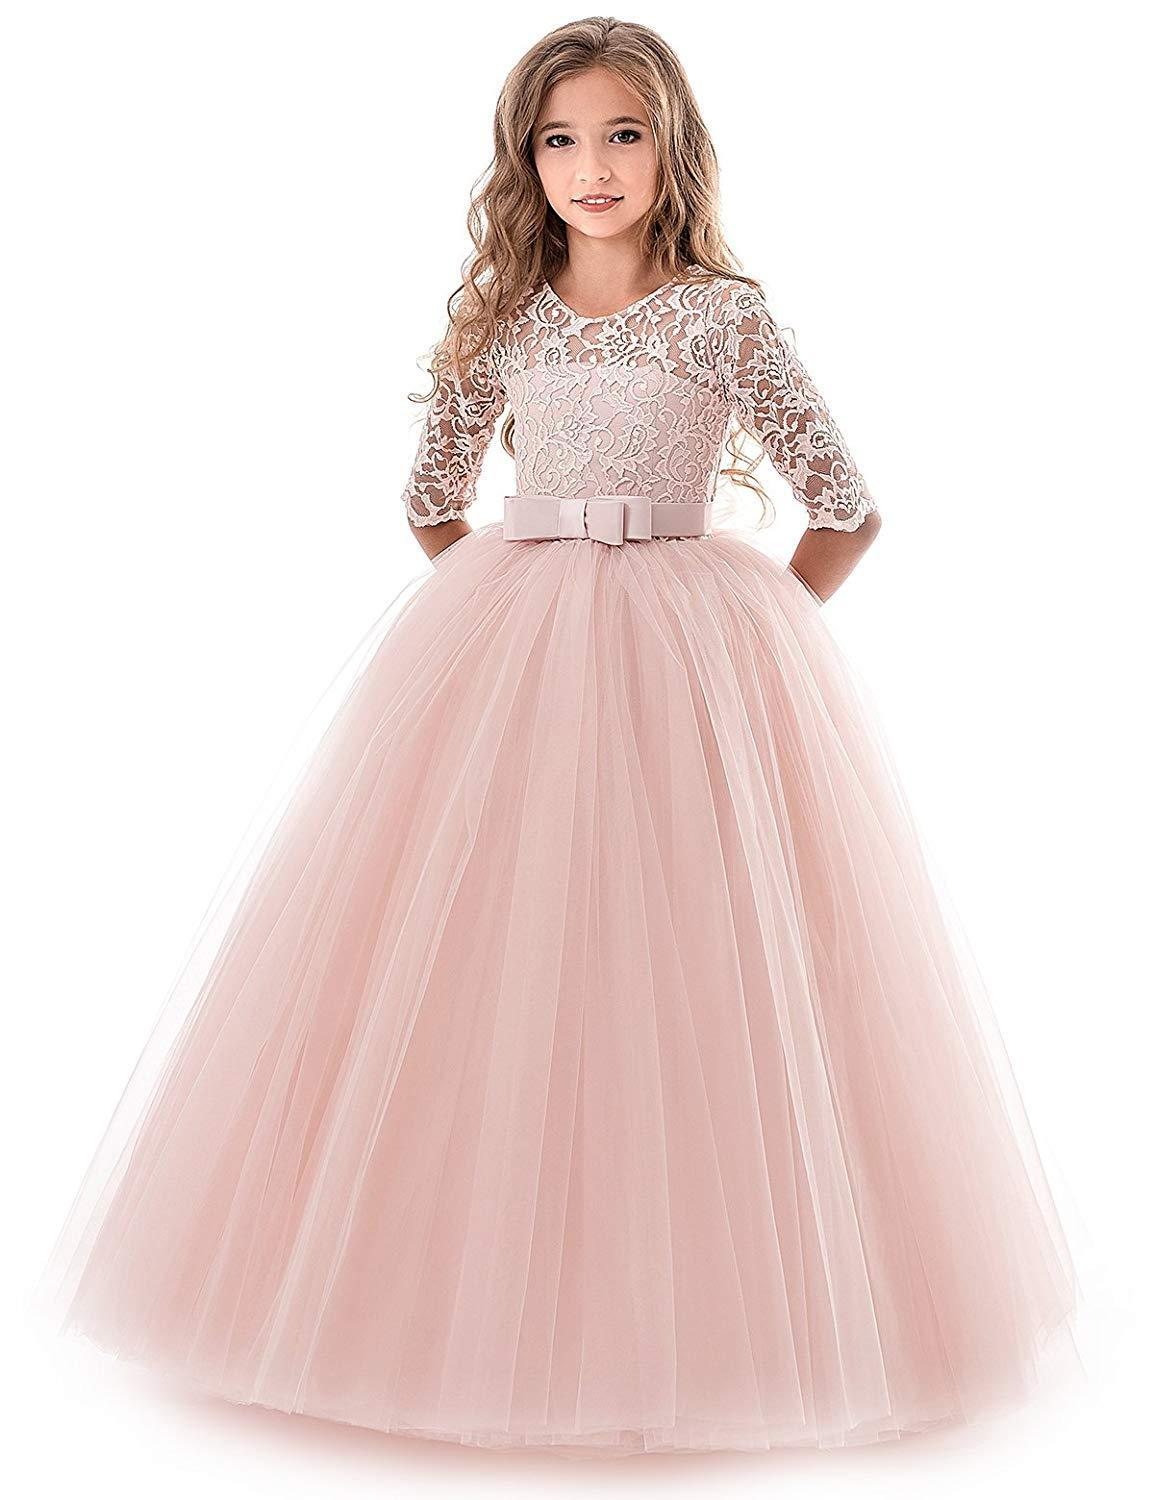 Flower Girl Dress Lace Tulle Floor Length Bridesmaid Dance Ball Gown Dress  For 2 14 Years Color Flower Girl Dresses Designer Flower Girl Dresses For  ... c6968b00016f